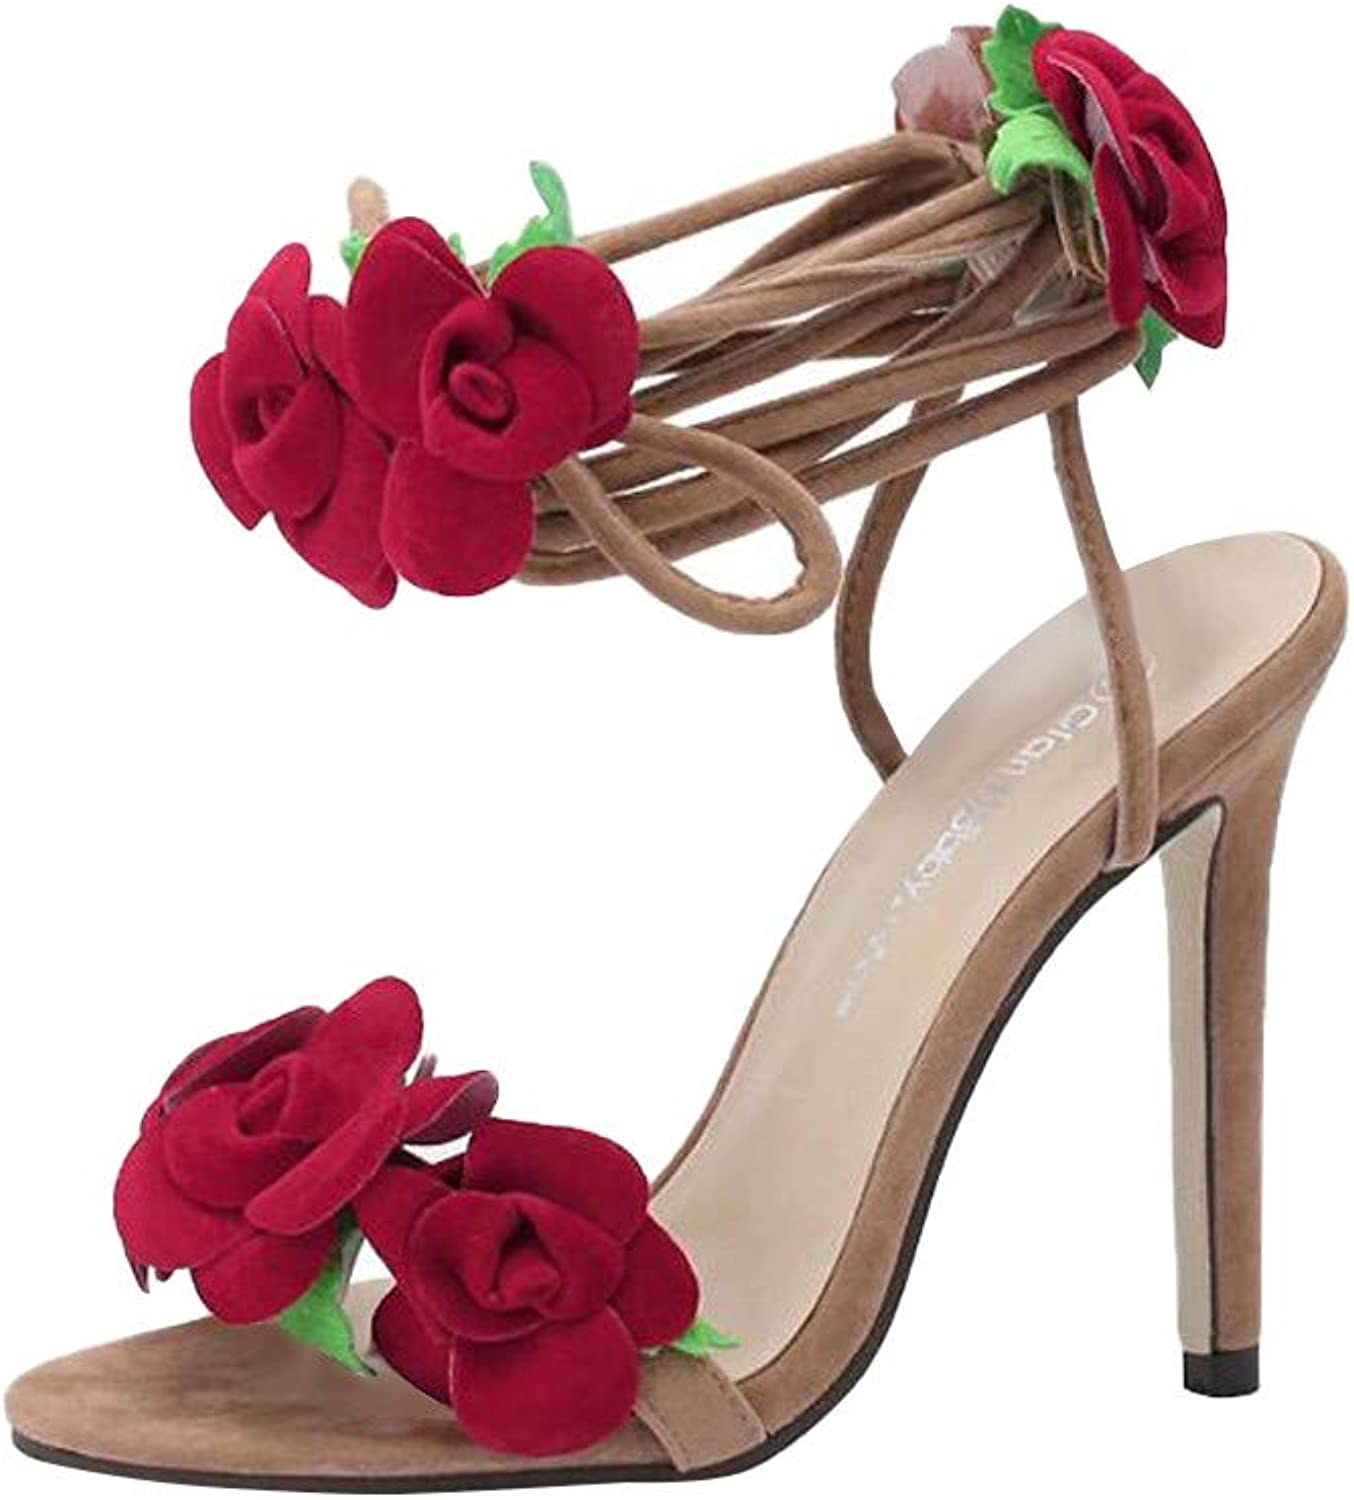 CHLZYD prevalent fashionable Women's Summer Flower Slippers Open Toe Strap High Heels shoes